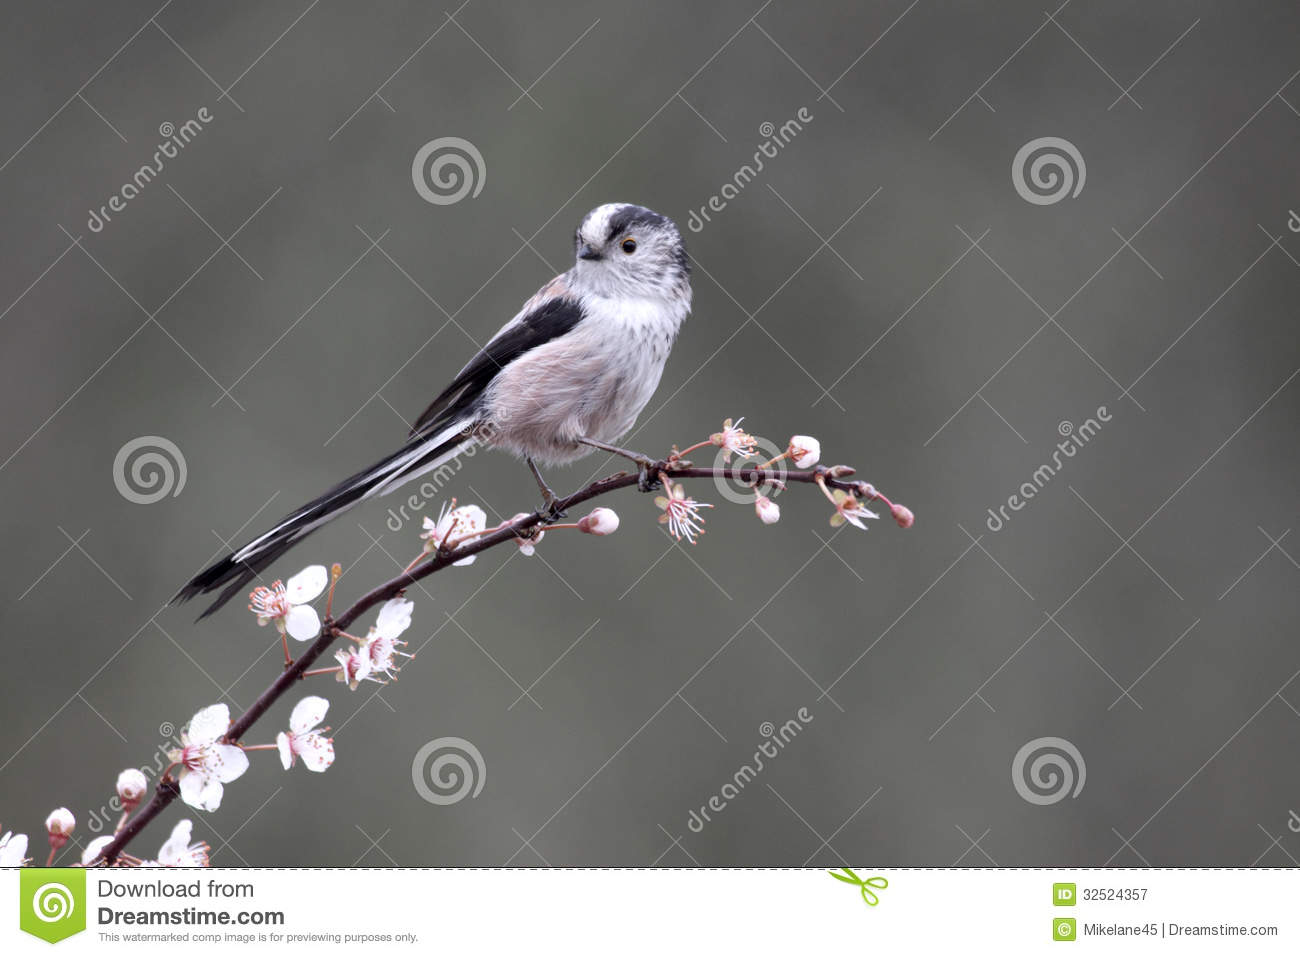 Long-tailed Tit clipart #18, Download drawings